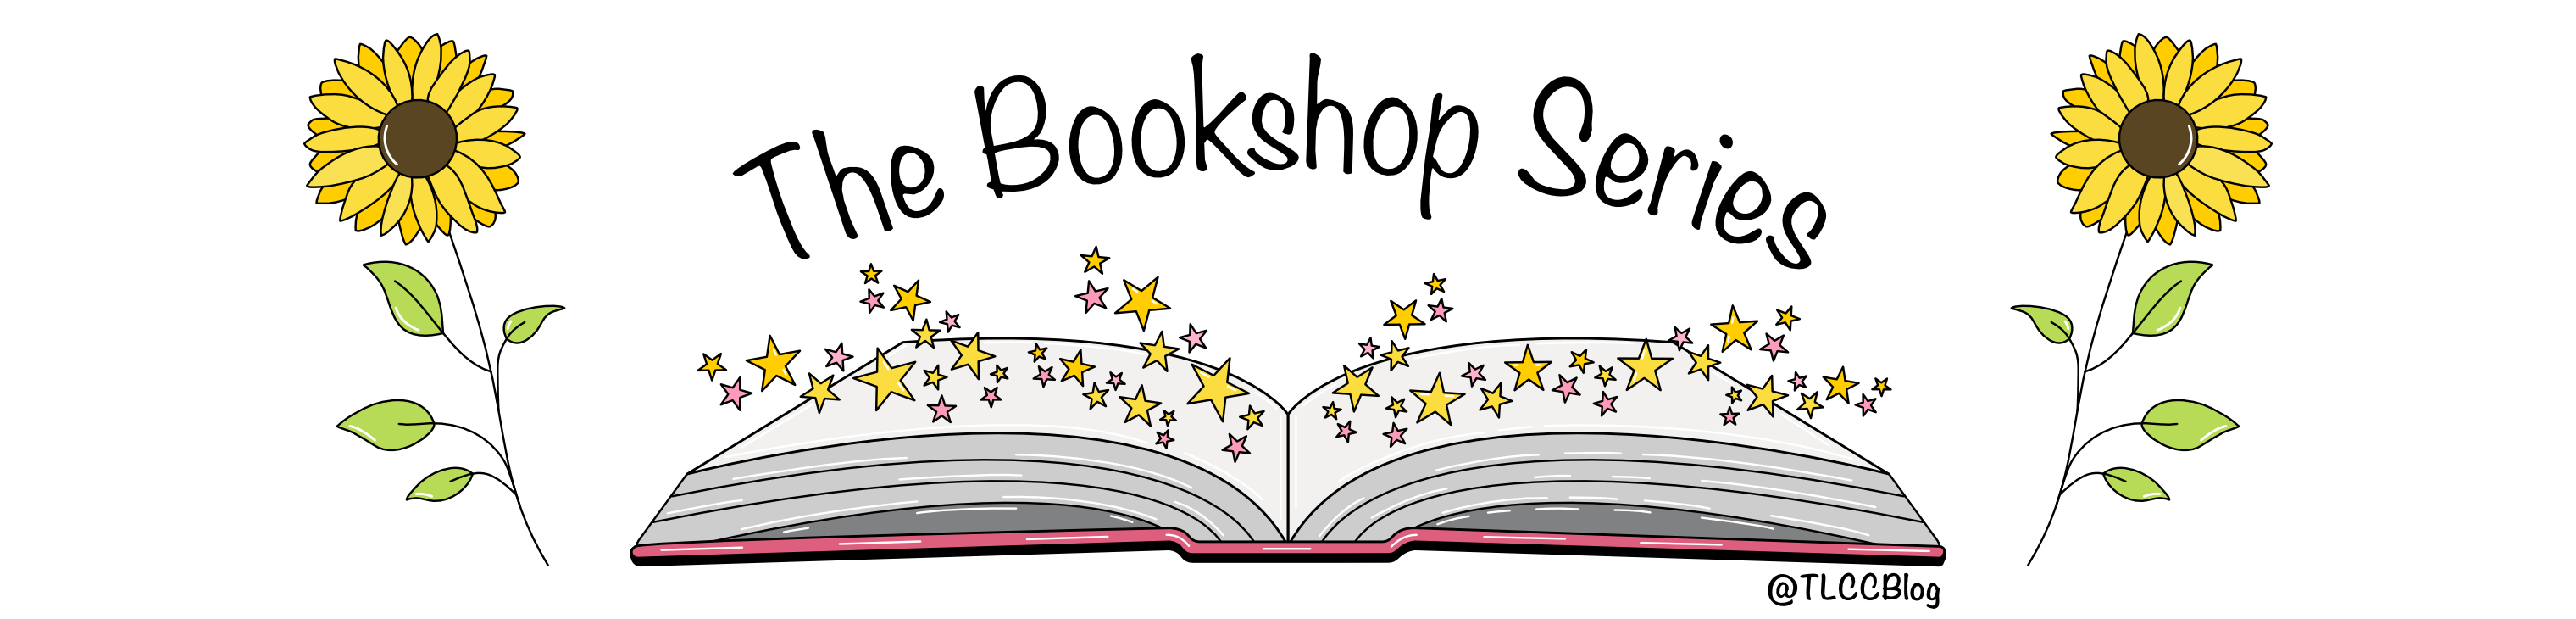 The Bookshop Series Header